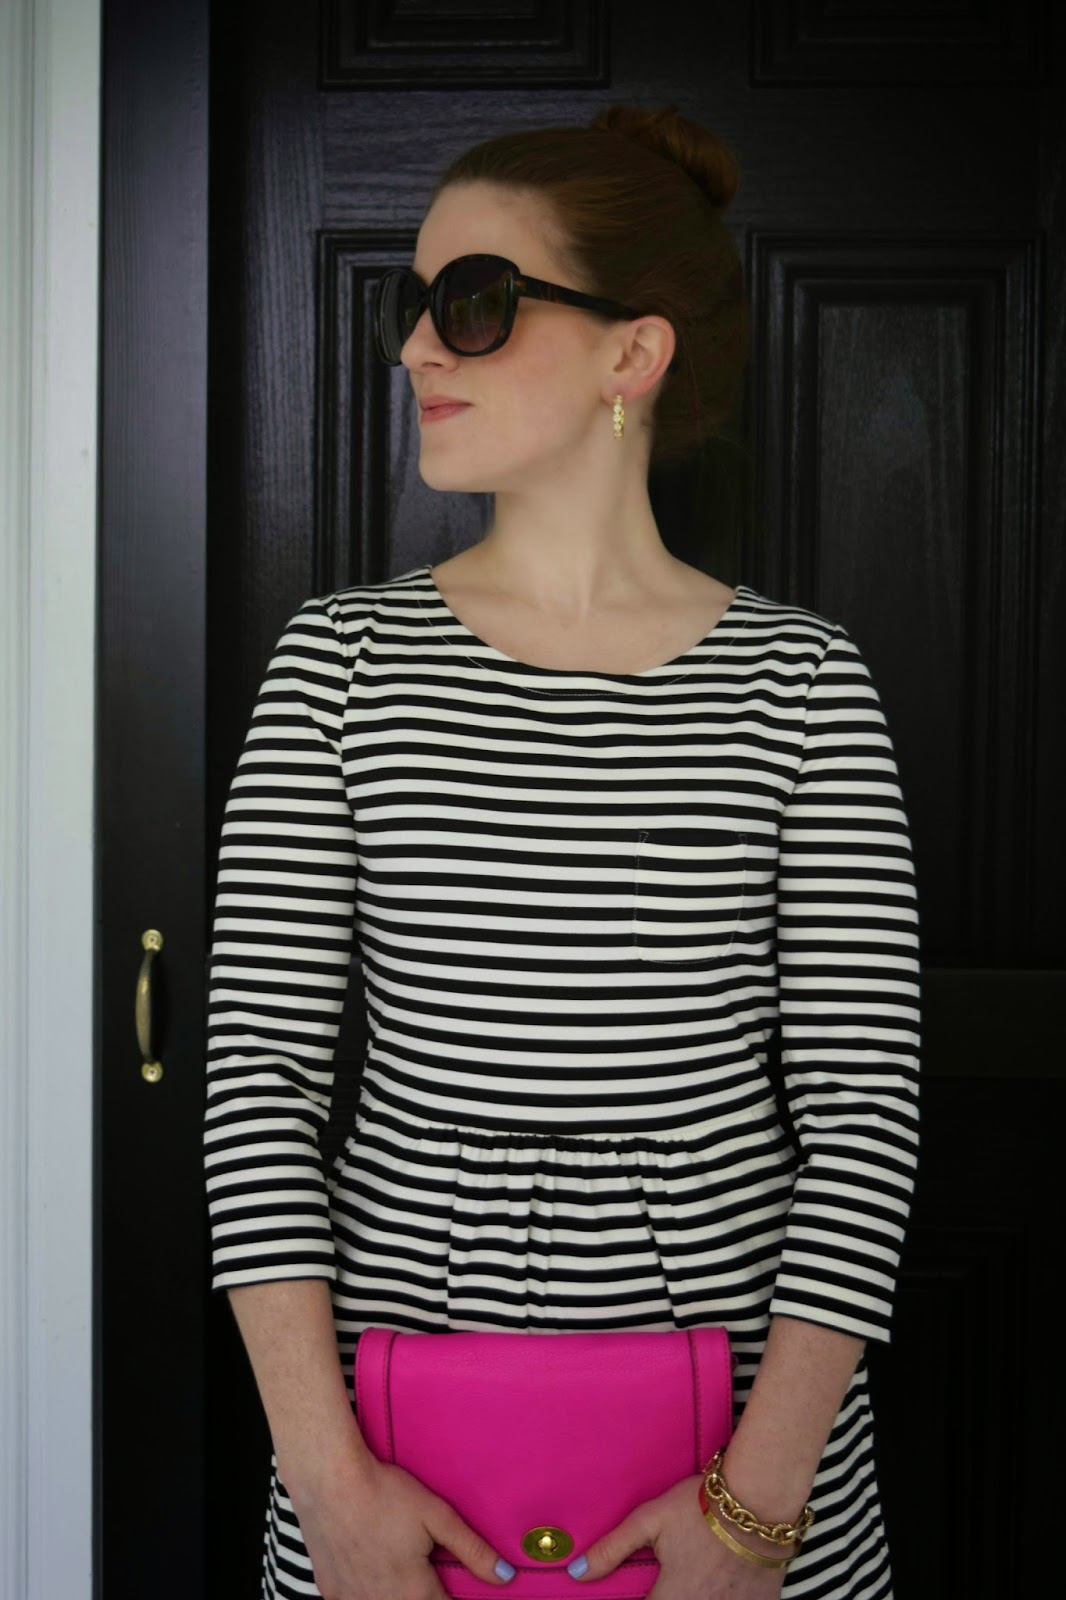 factory pocket dress in stripe - j.crew striped dress - black and white striped dress